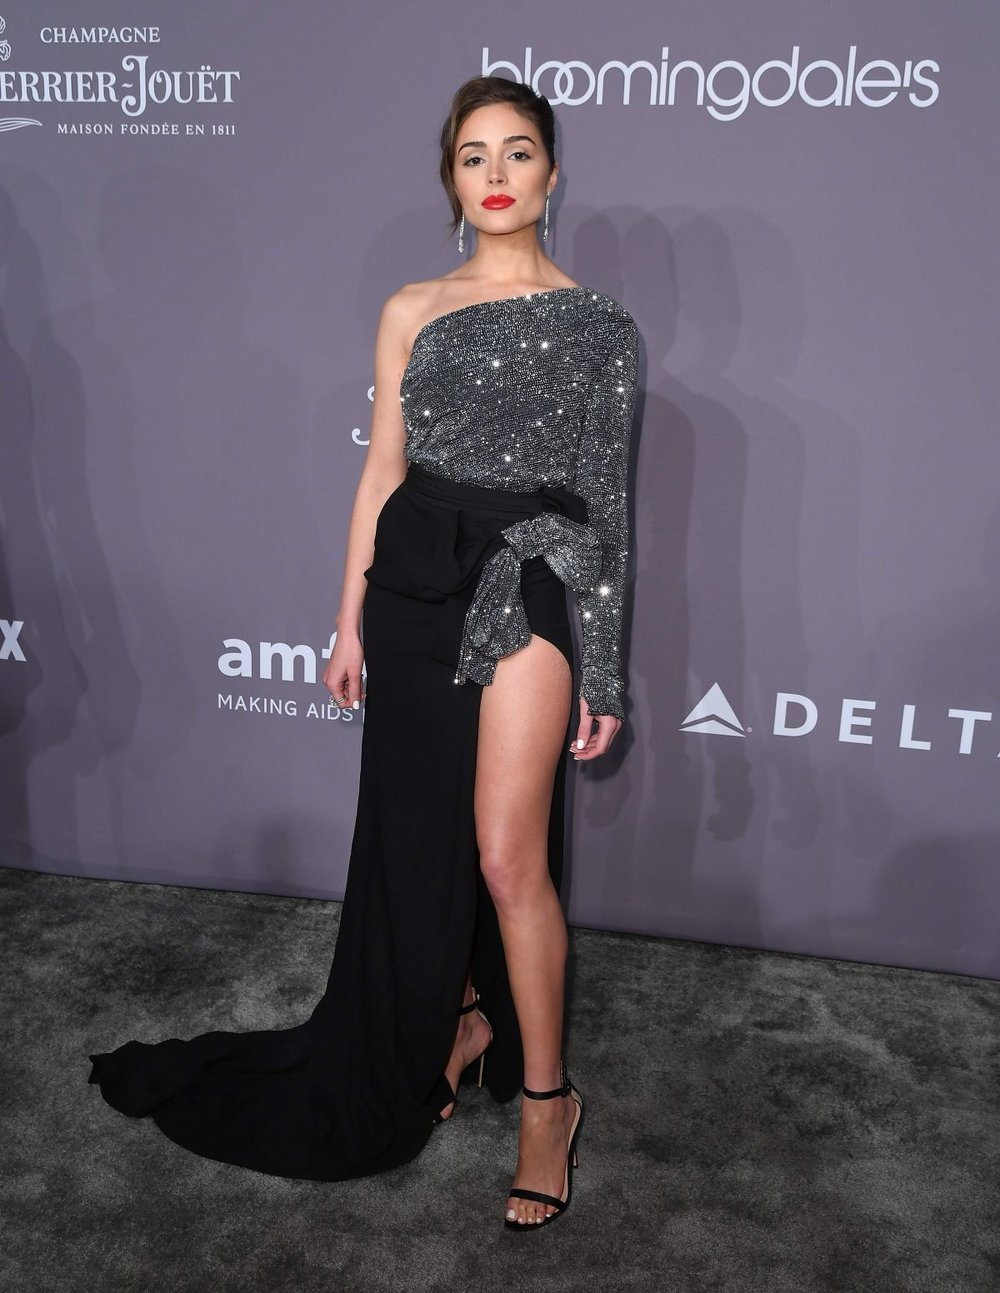 olivia-culpo-at-amfar-gala-2018-in-new-york-02-07-2018-3.jpg